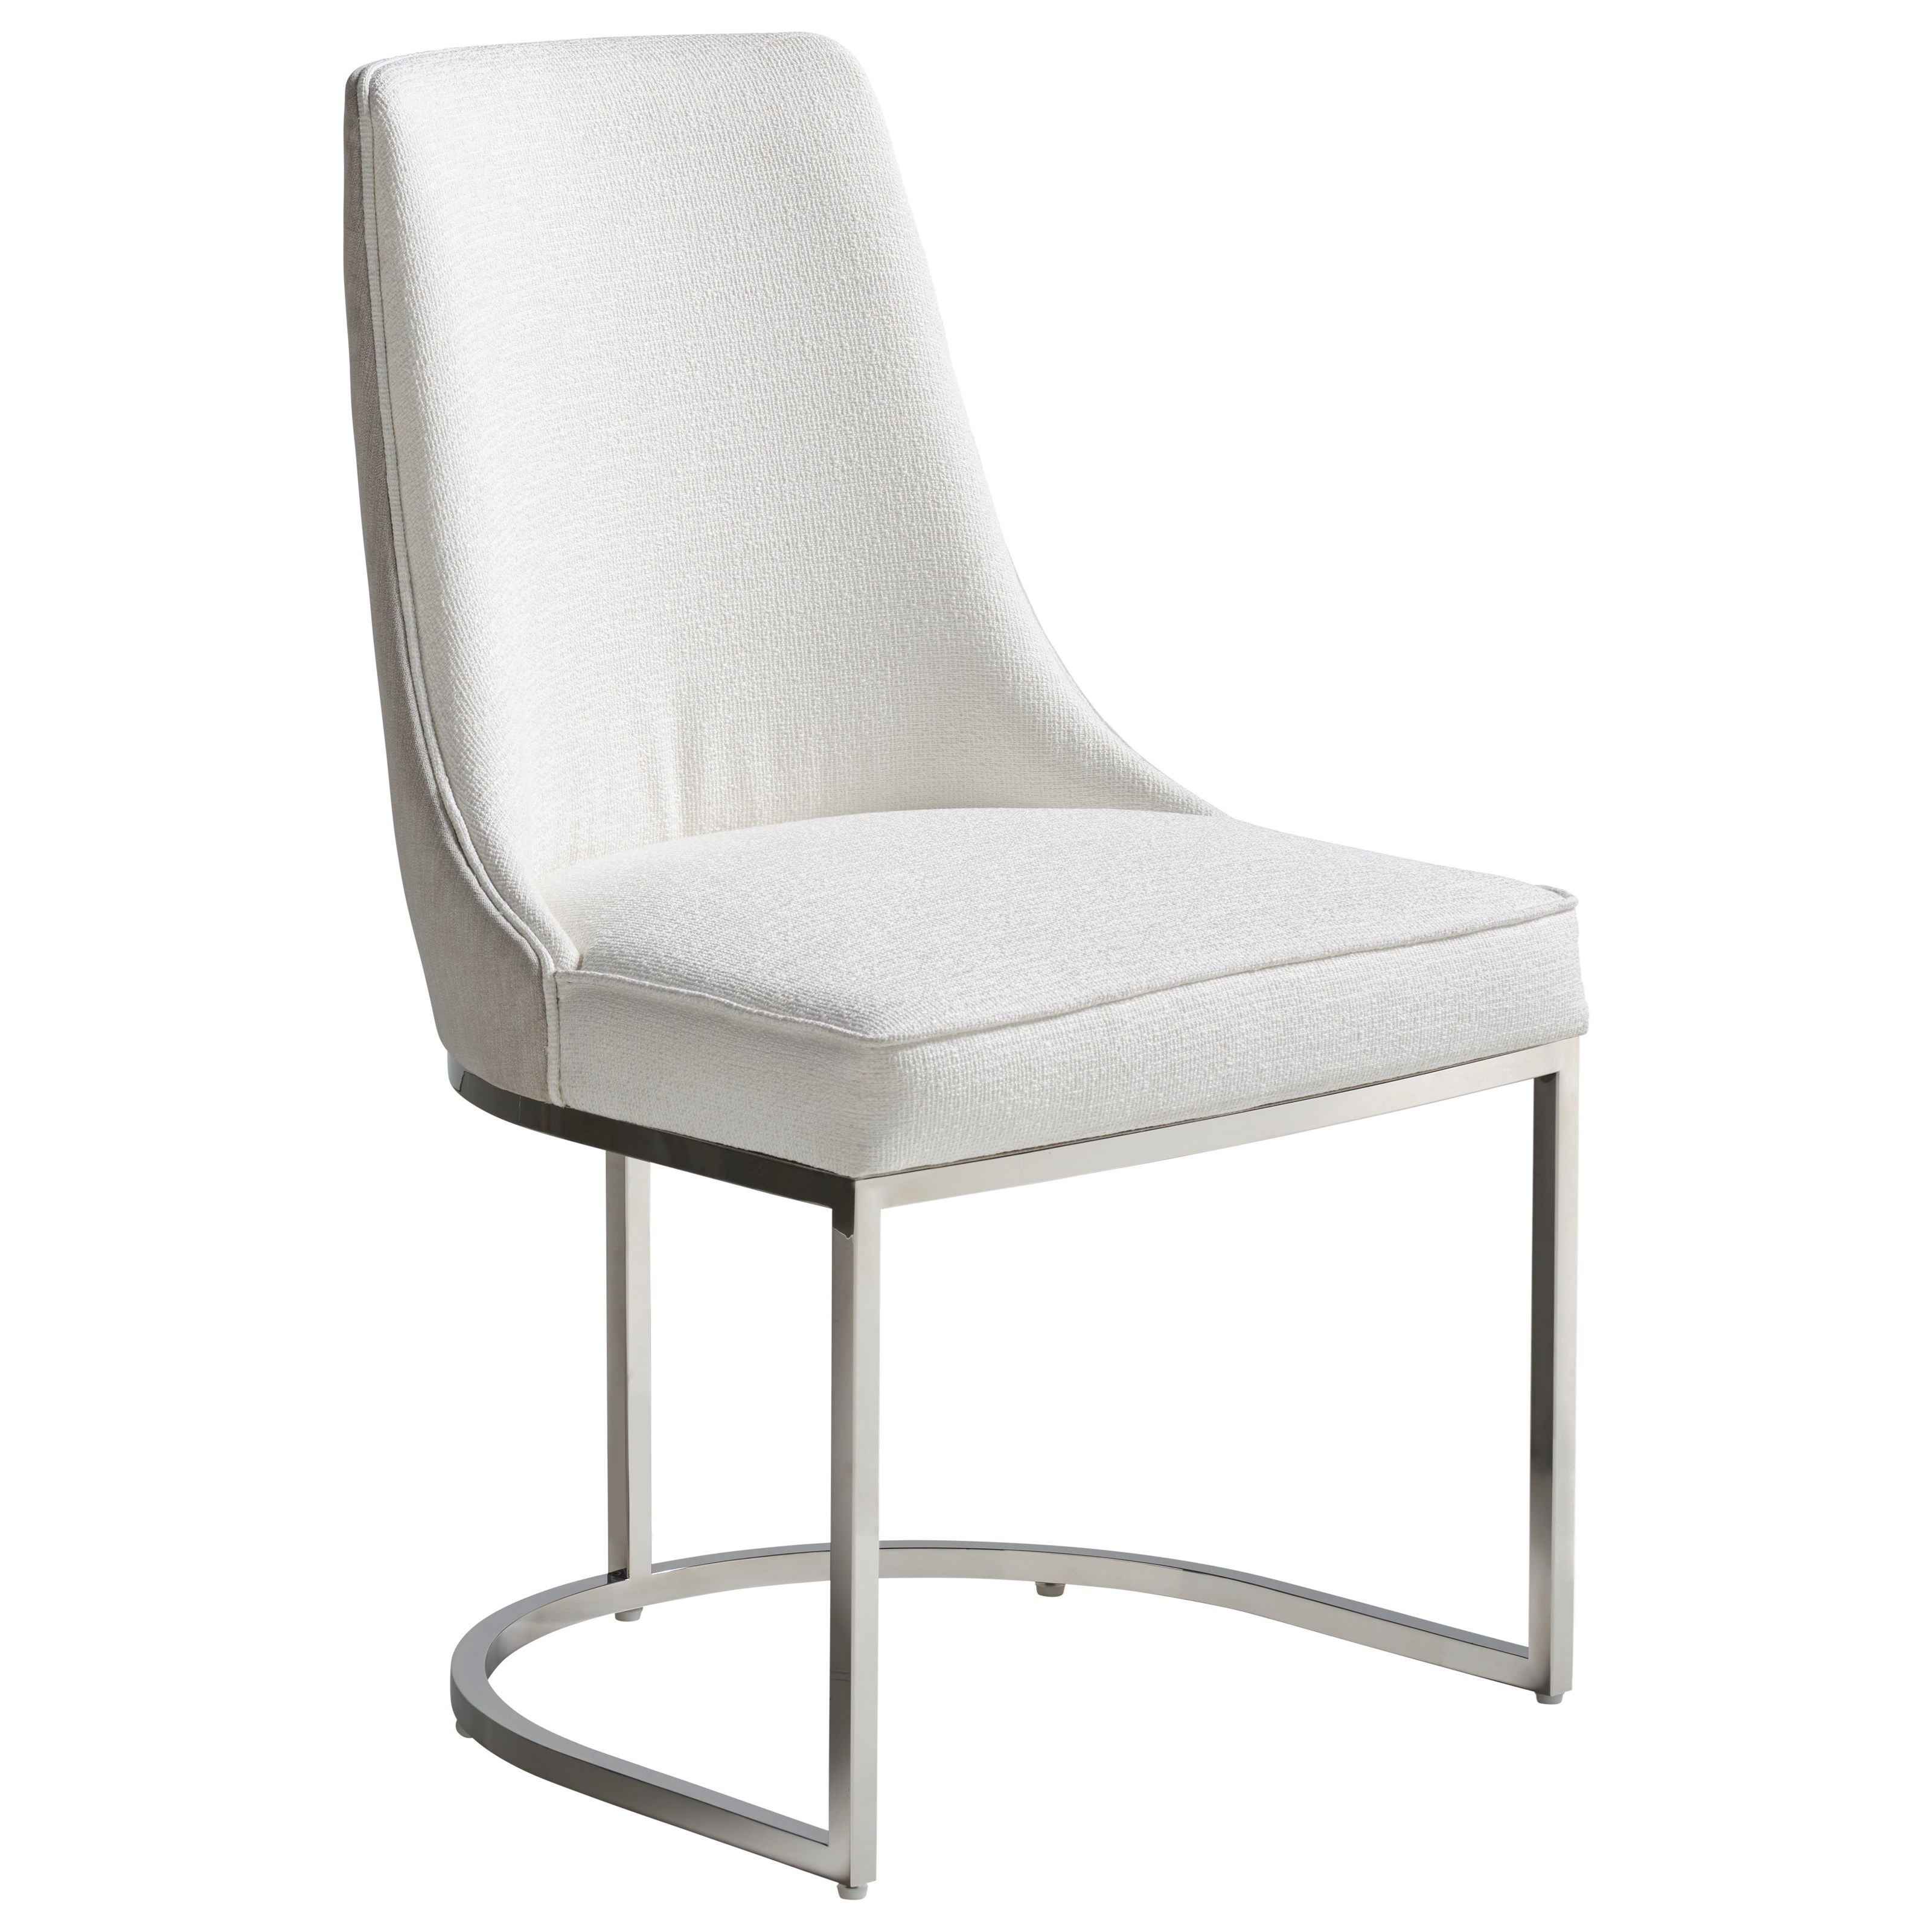 Modern Colt Dining Chair - Hyde Snow/Sorrel by Universal at Baer's Furniture